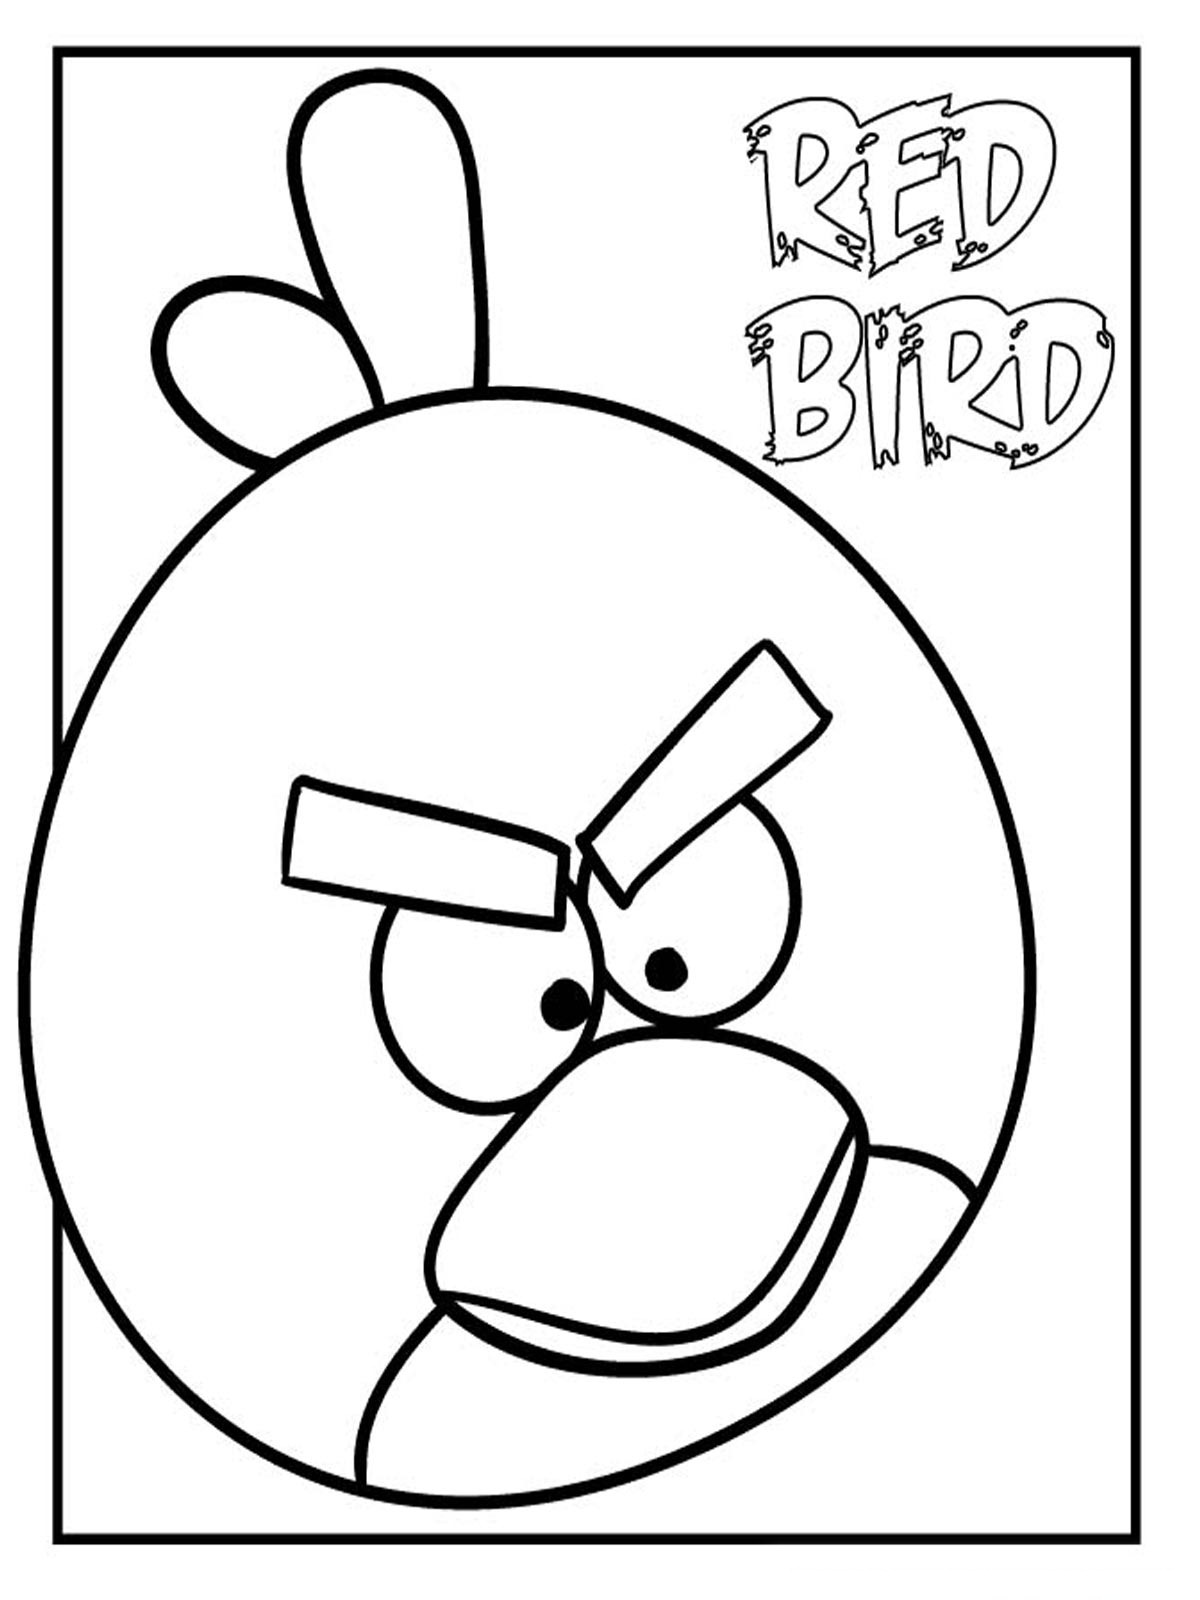 Angry Birds Colouring Pages that